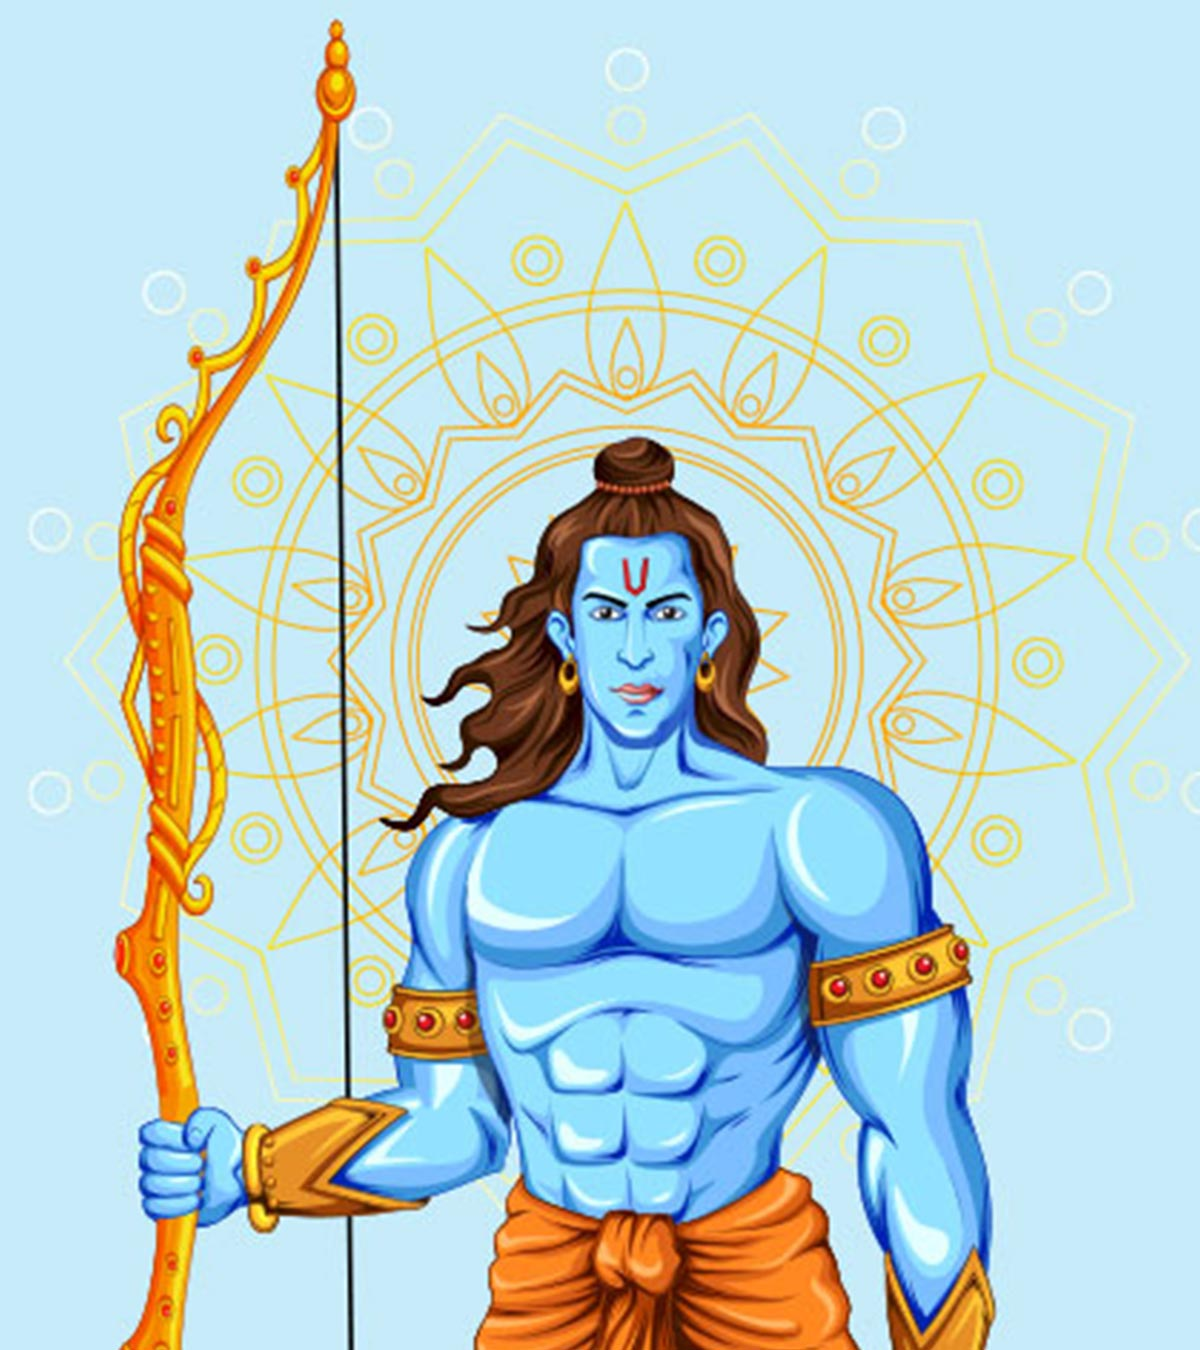 65 Lord Rama Names For Baby Boy With Meanings - MomJunction